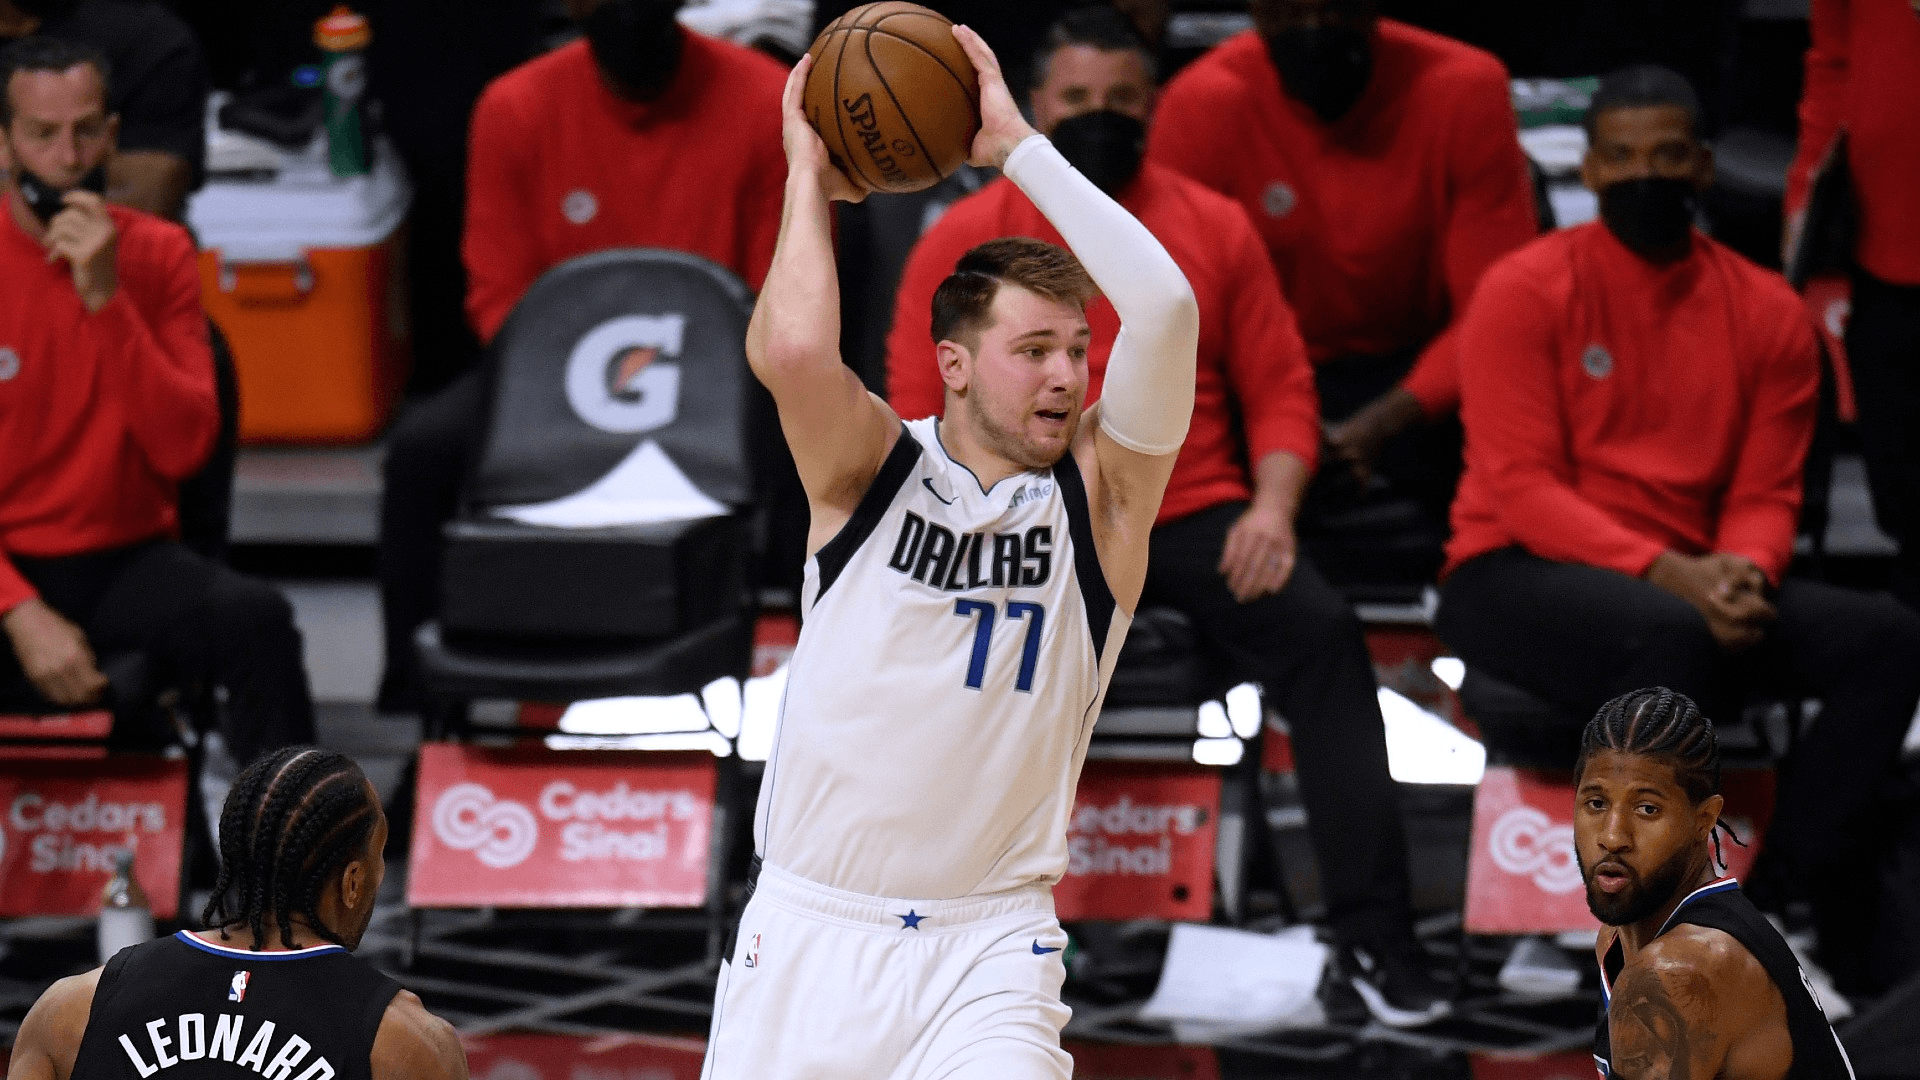 Clippers vs Mavericks Game 4 Preview: With Doncic Dinged Up, Will the Road Team Win a Fourth Straight Game?